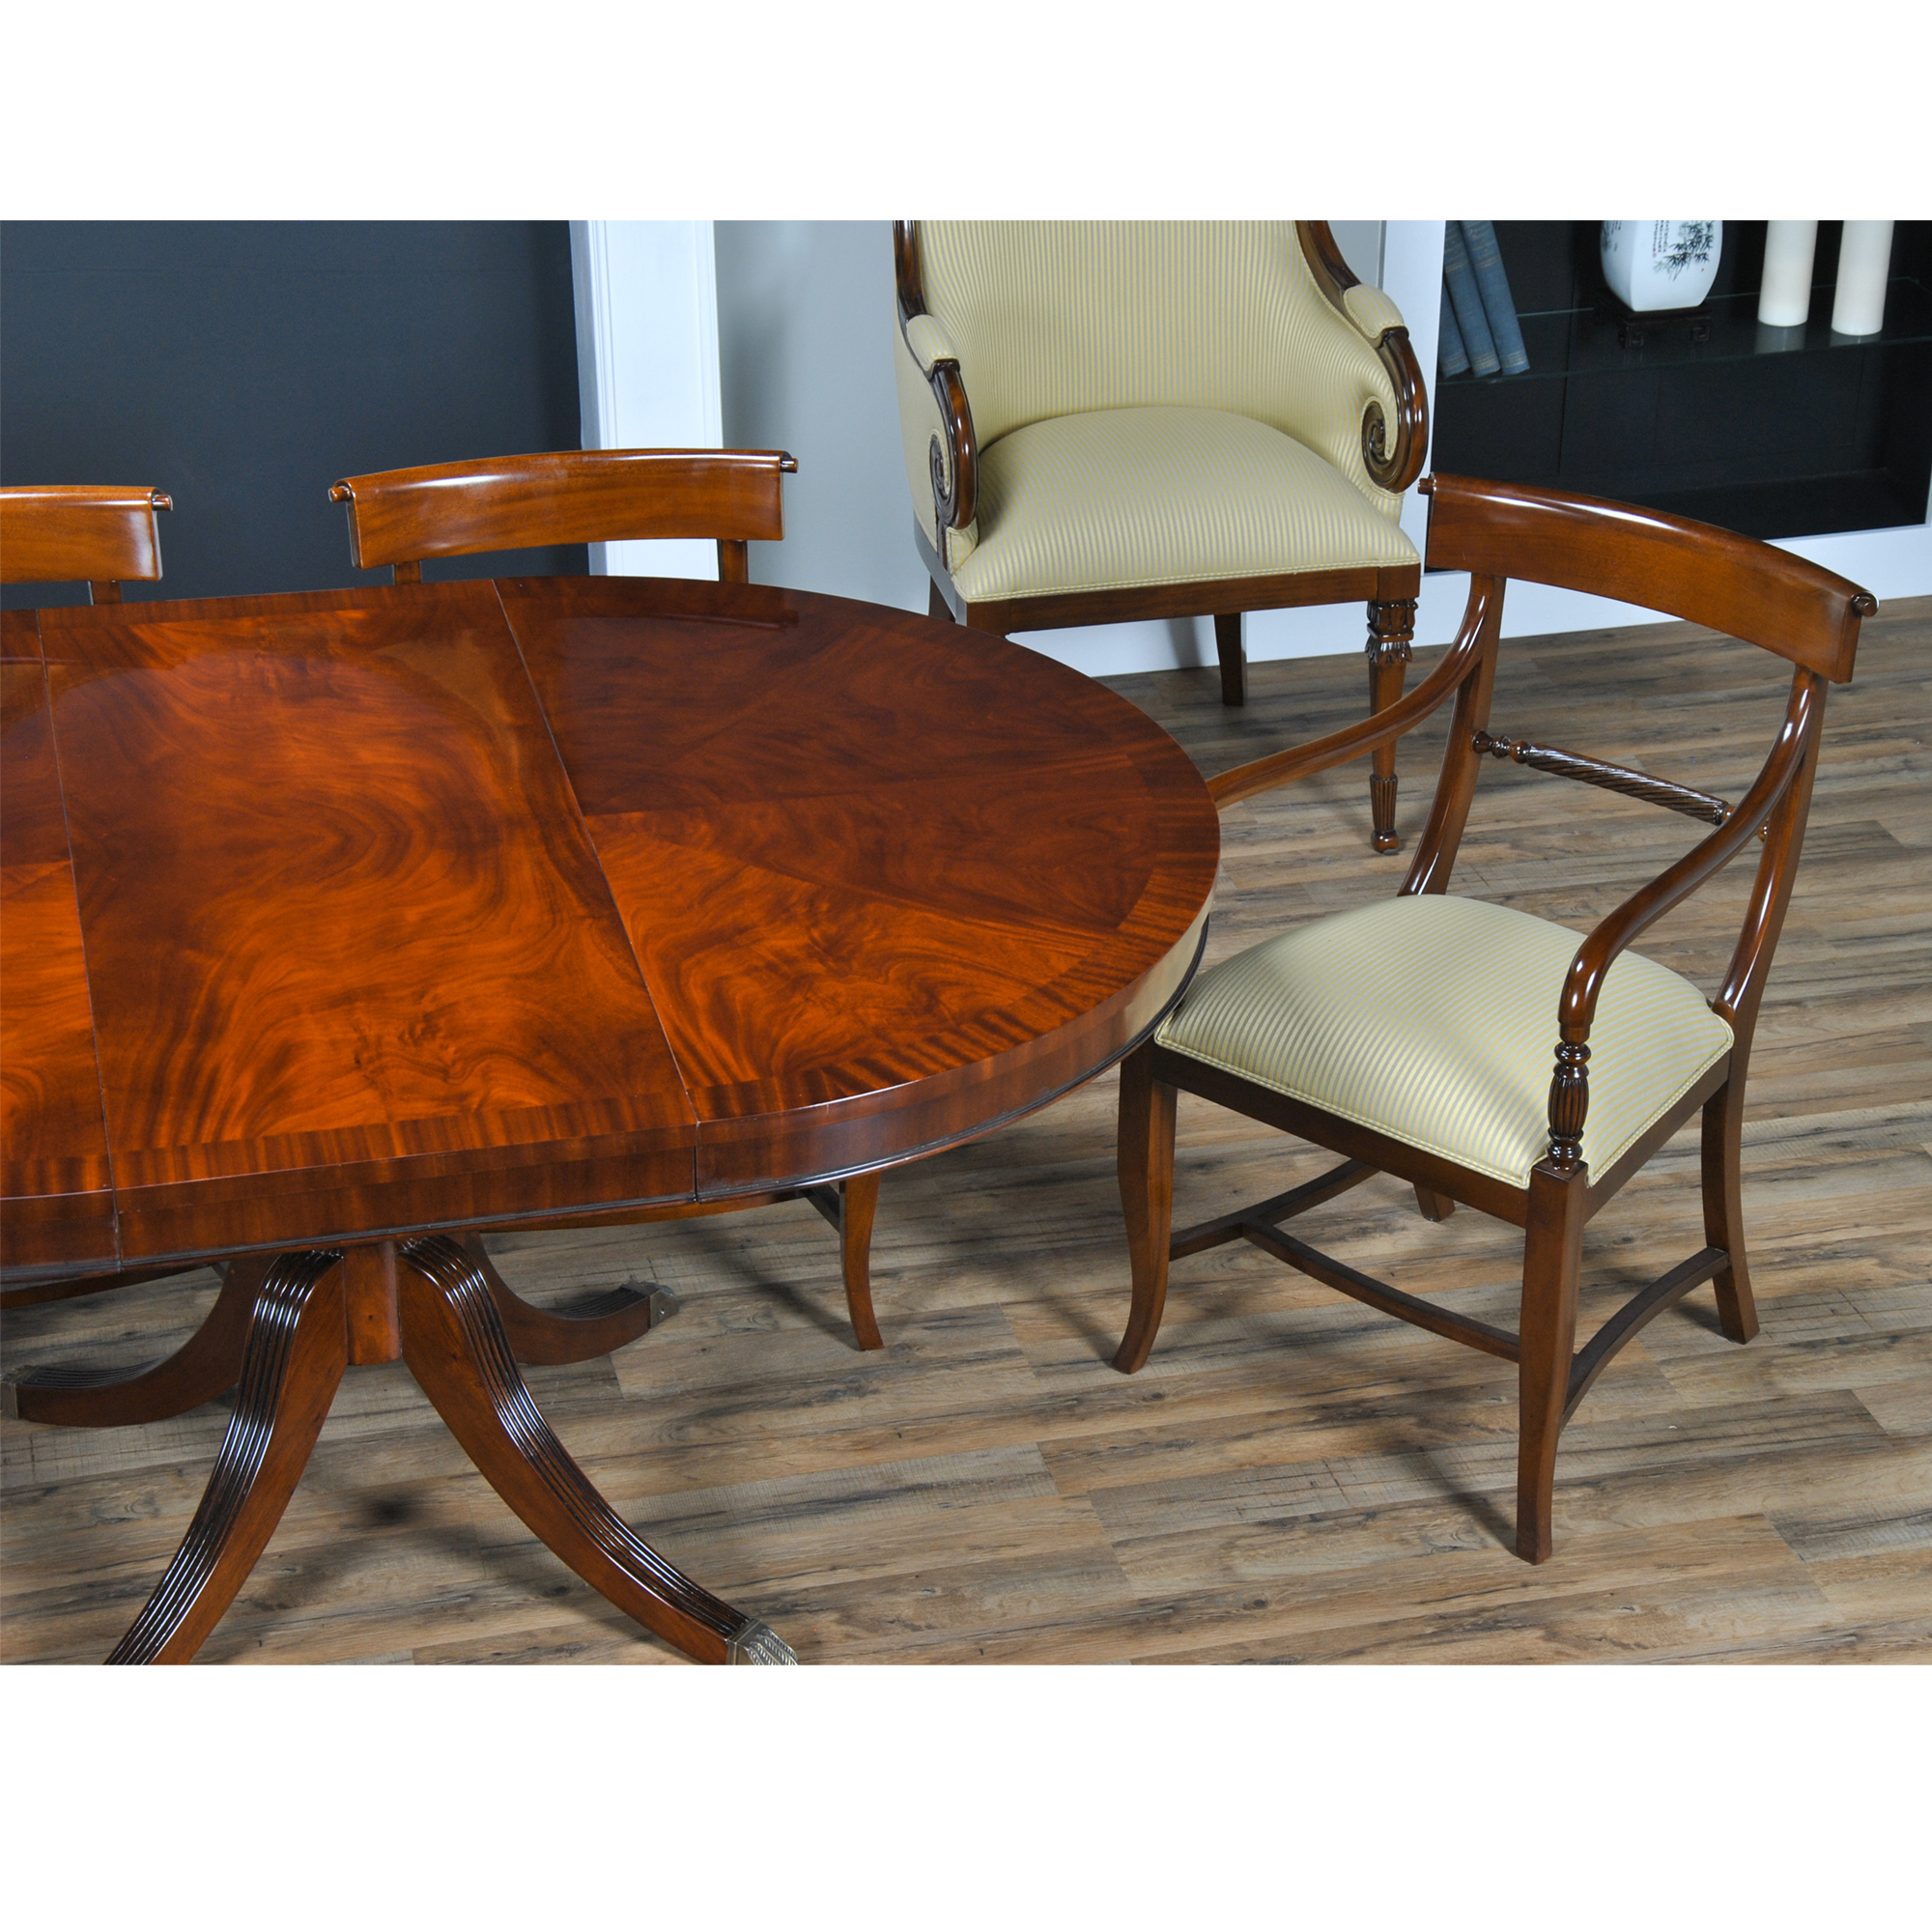 "Dining Table Rollins Dining Table: 48"" Round Dining Table, Niagara Furniture, Round Mahogany"